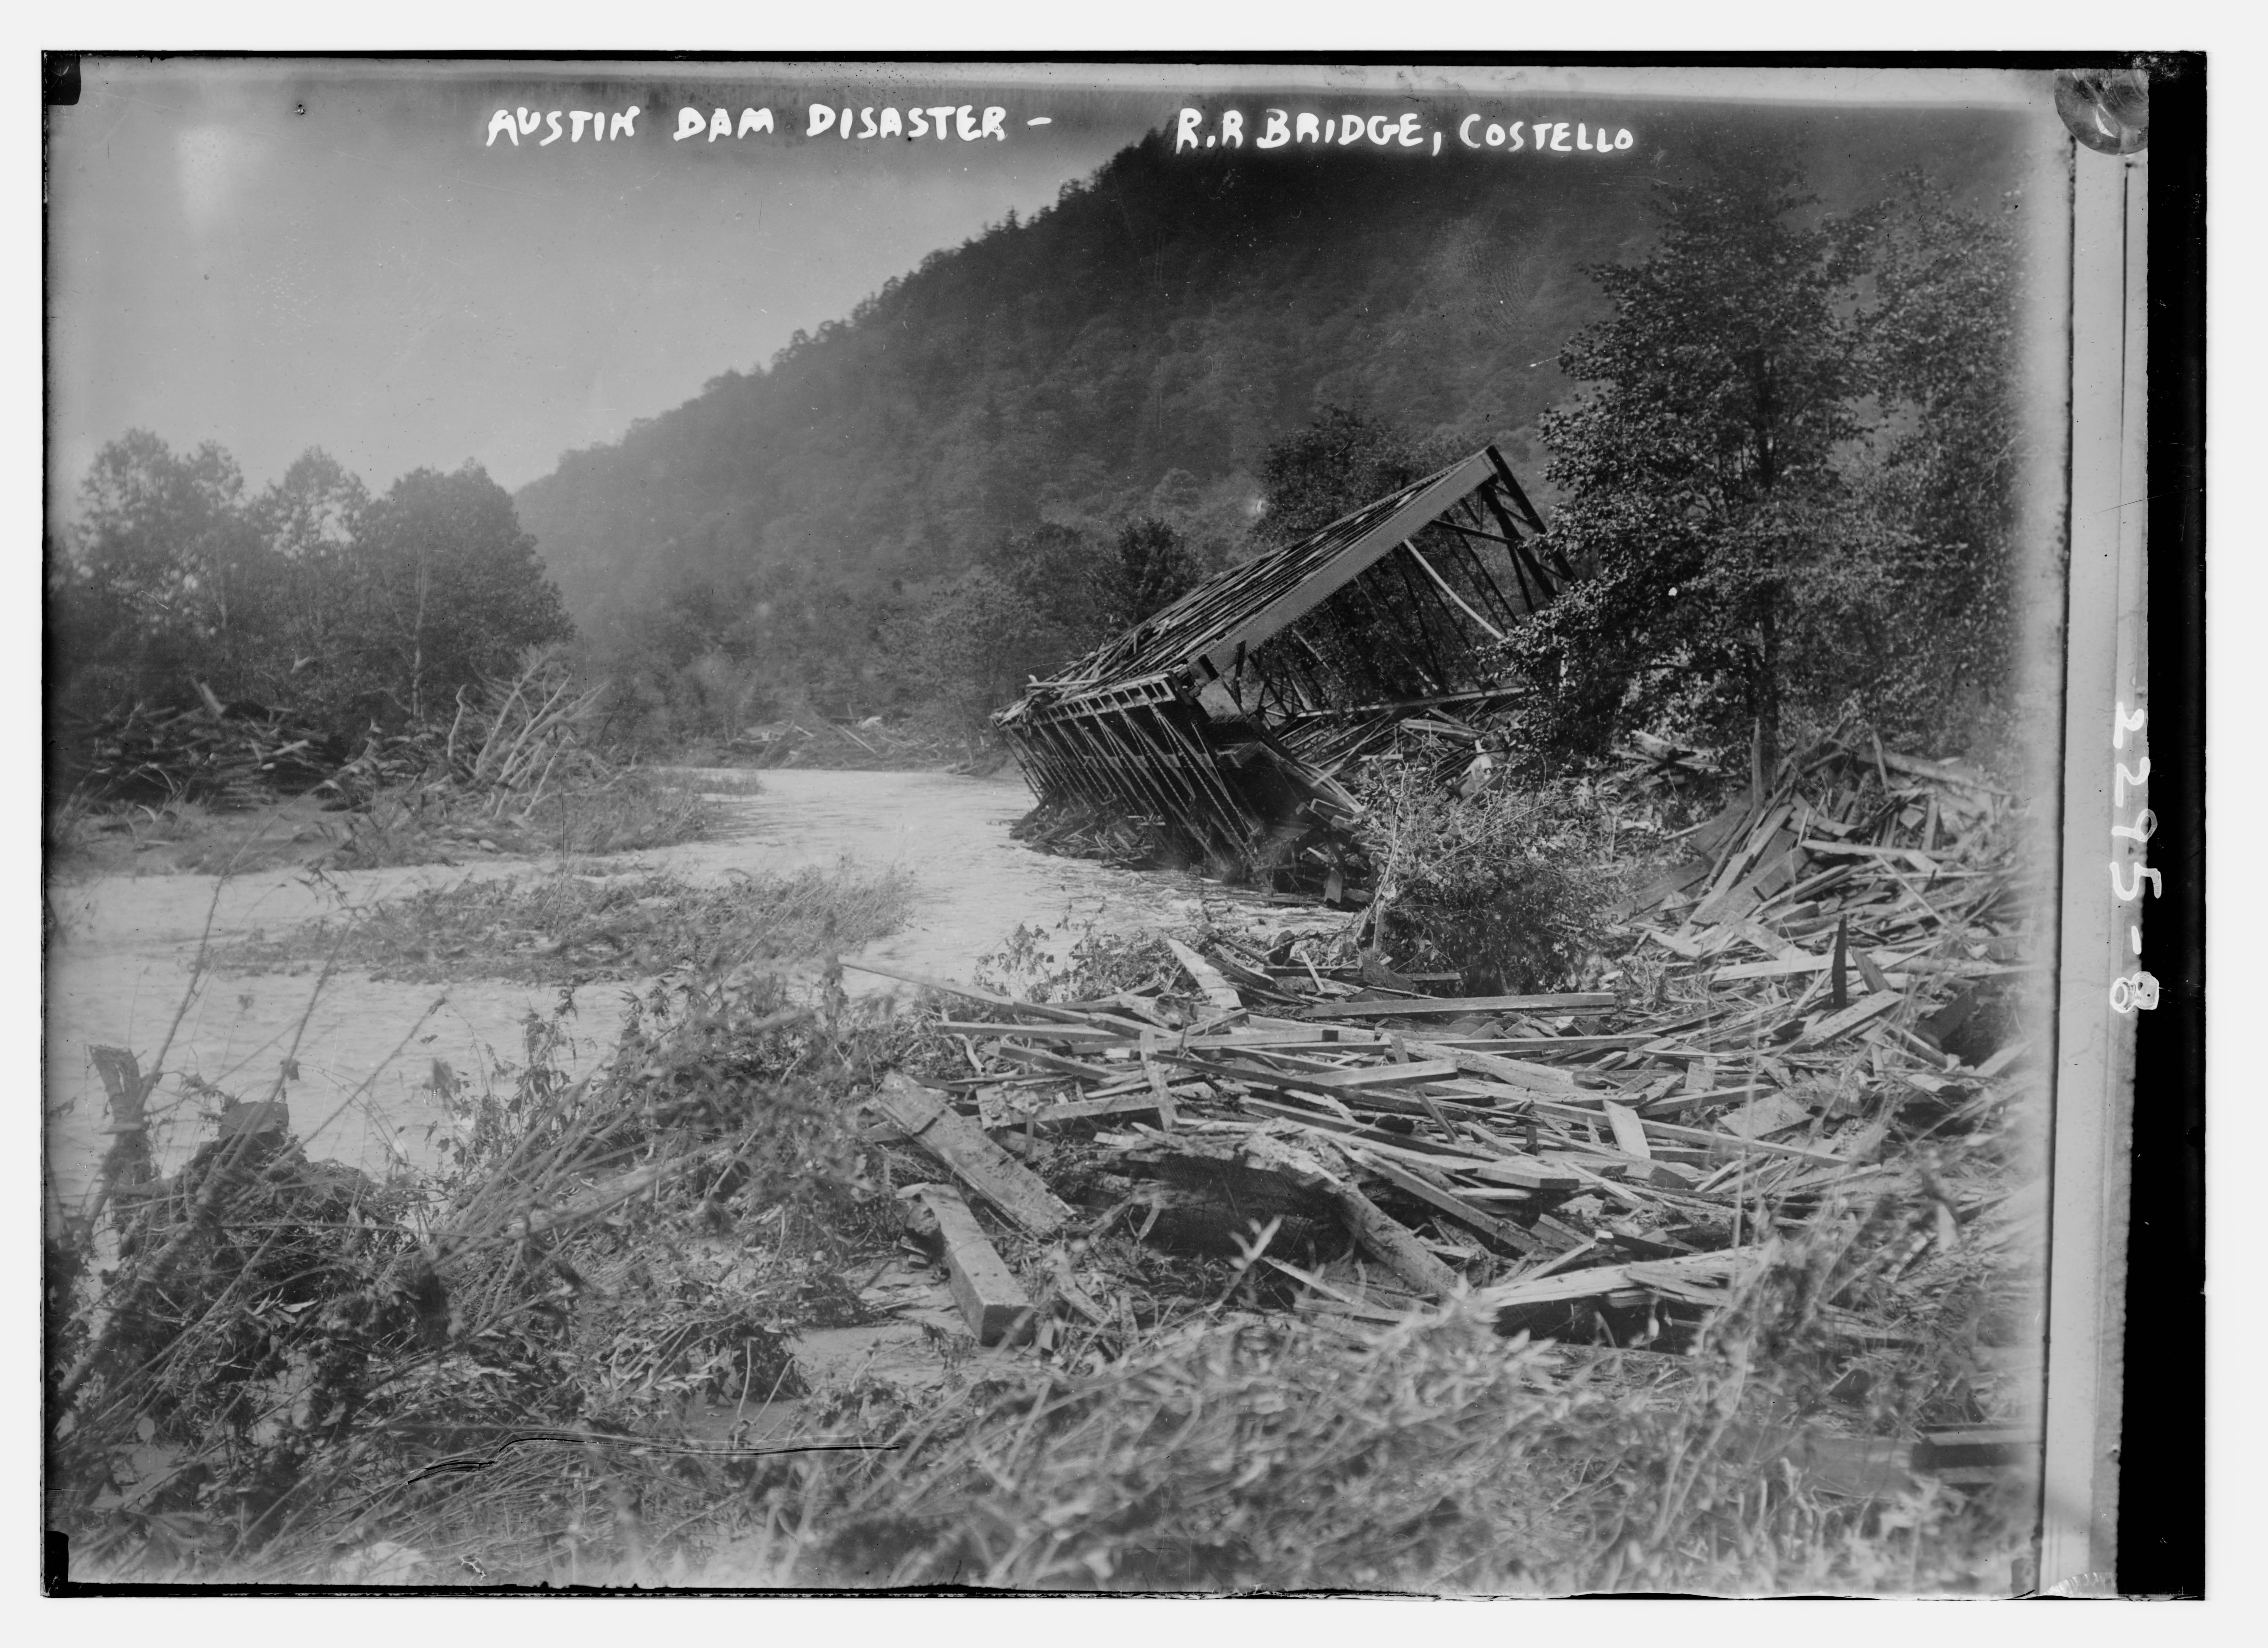 Wreckage of the railroad bridge at Costello